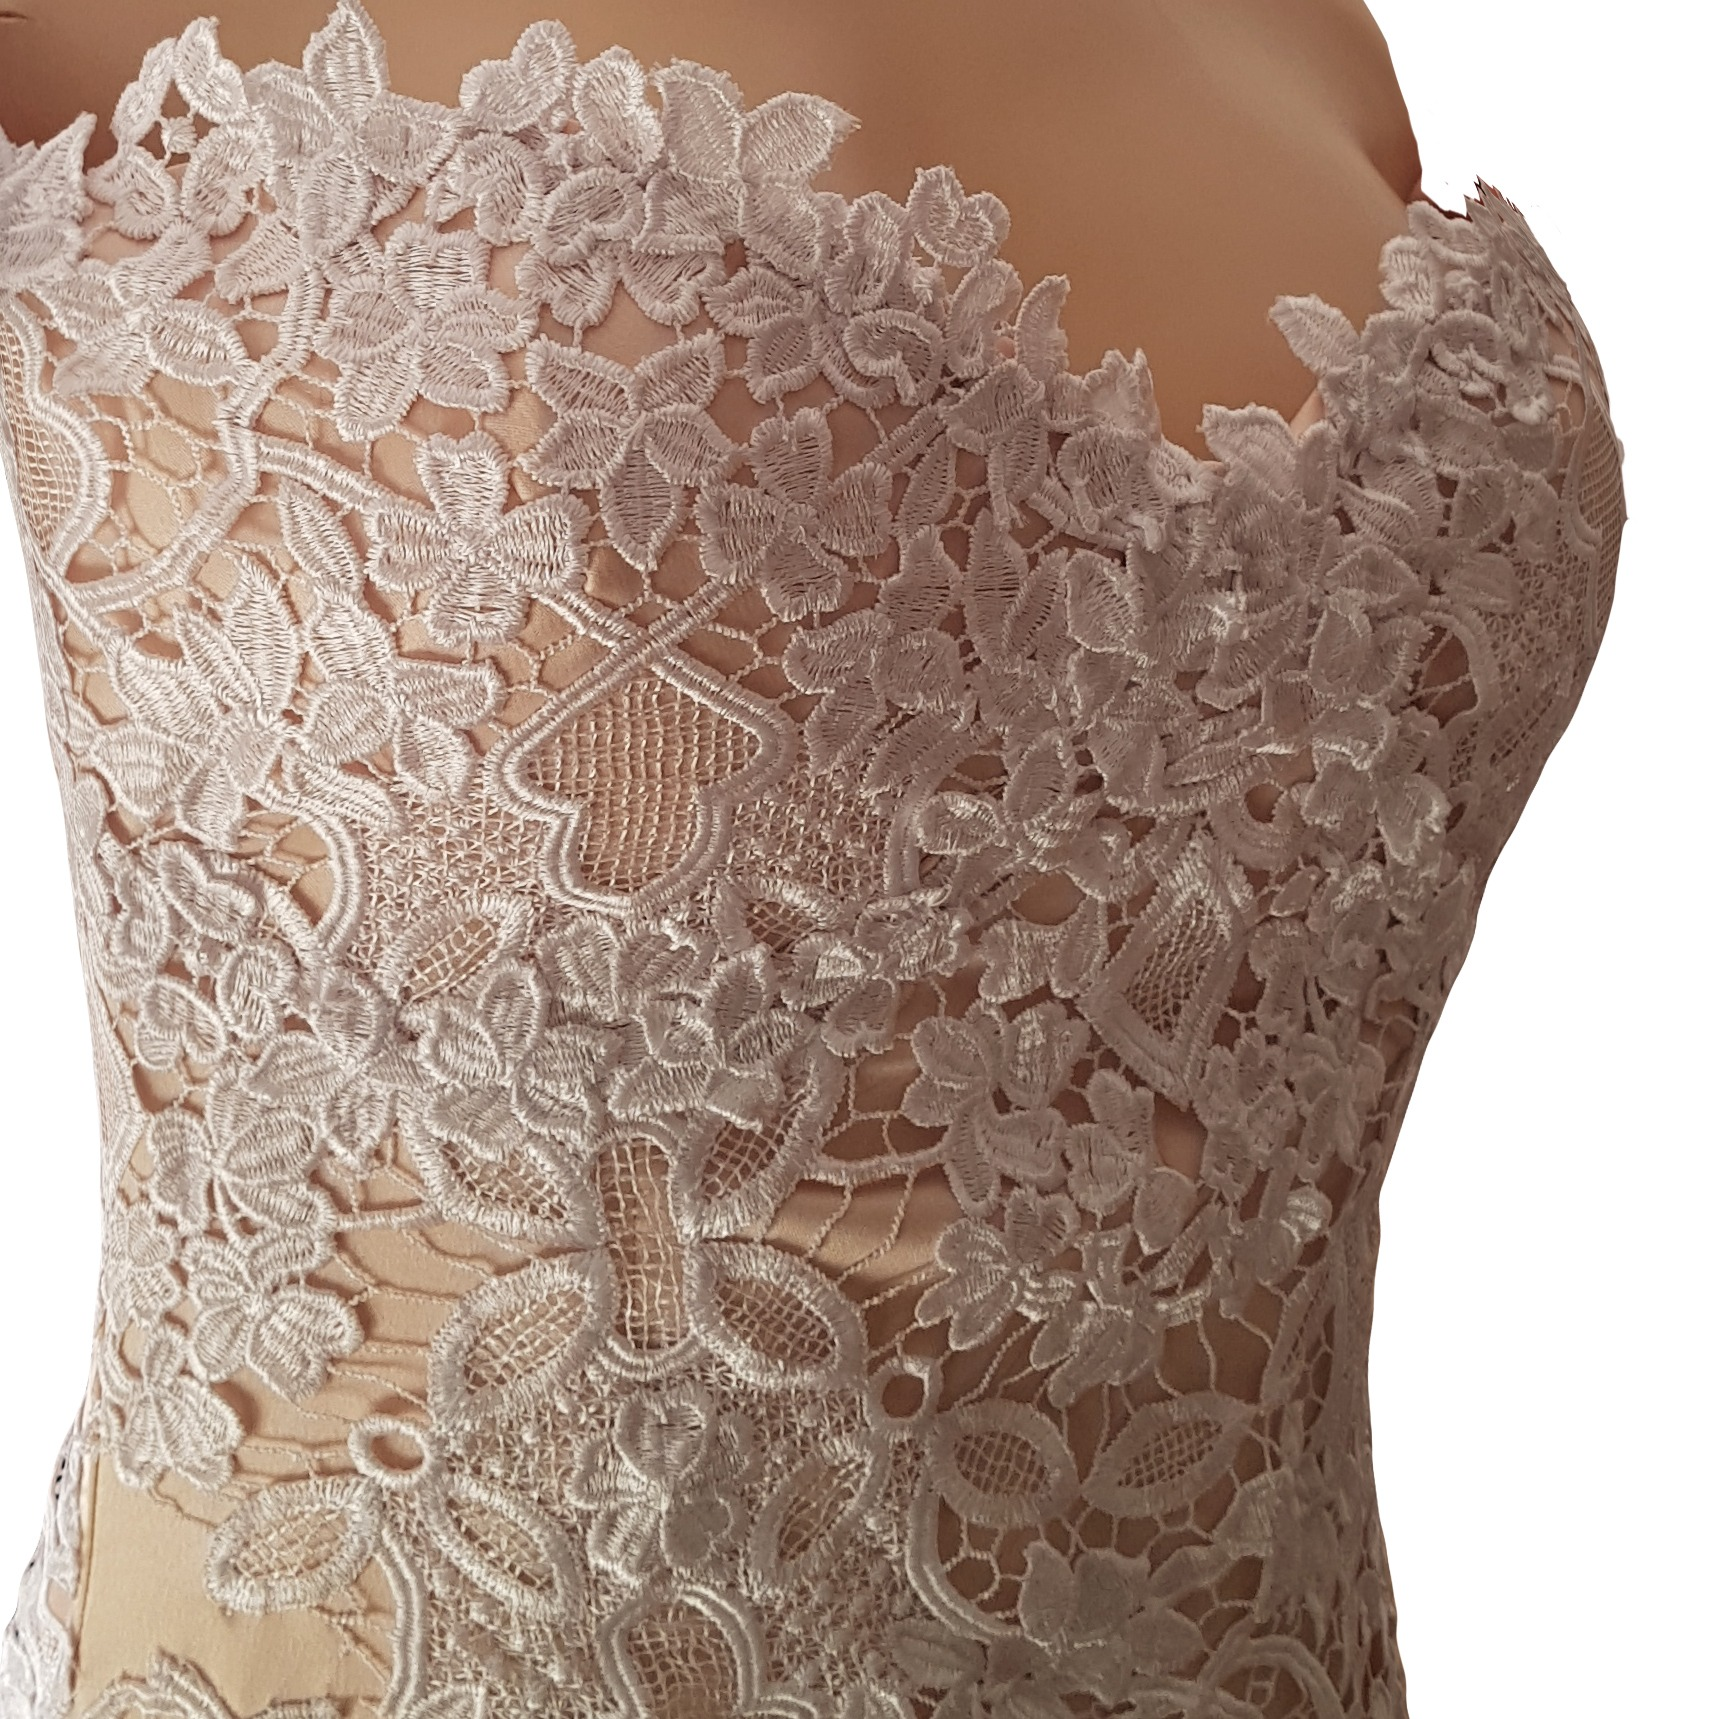 White lace and pinky peach mermaid wedding dress 6 pale peach and white soft mermaid wedding dress with a lace-up open back and off-shoulder strap sleeve. With a sheer train detailed with lace.